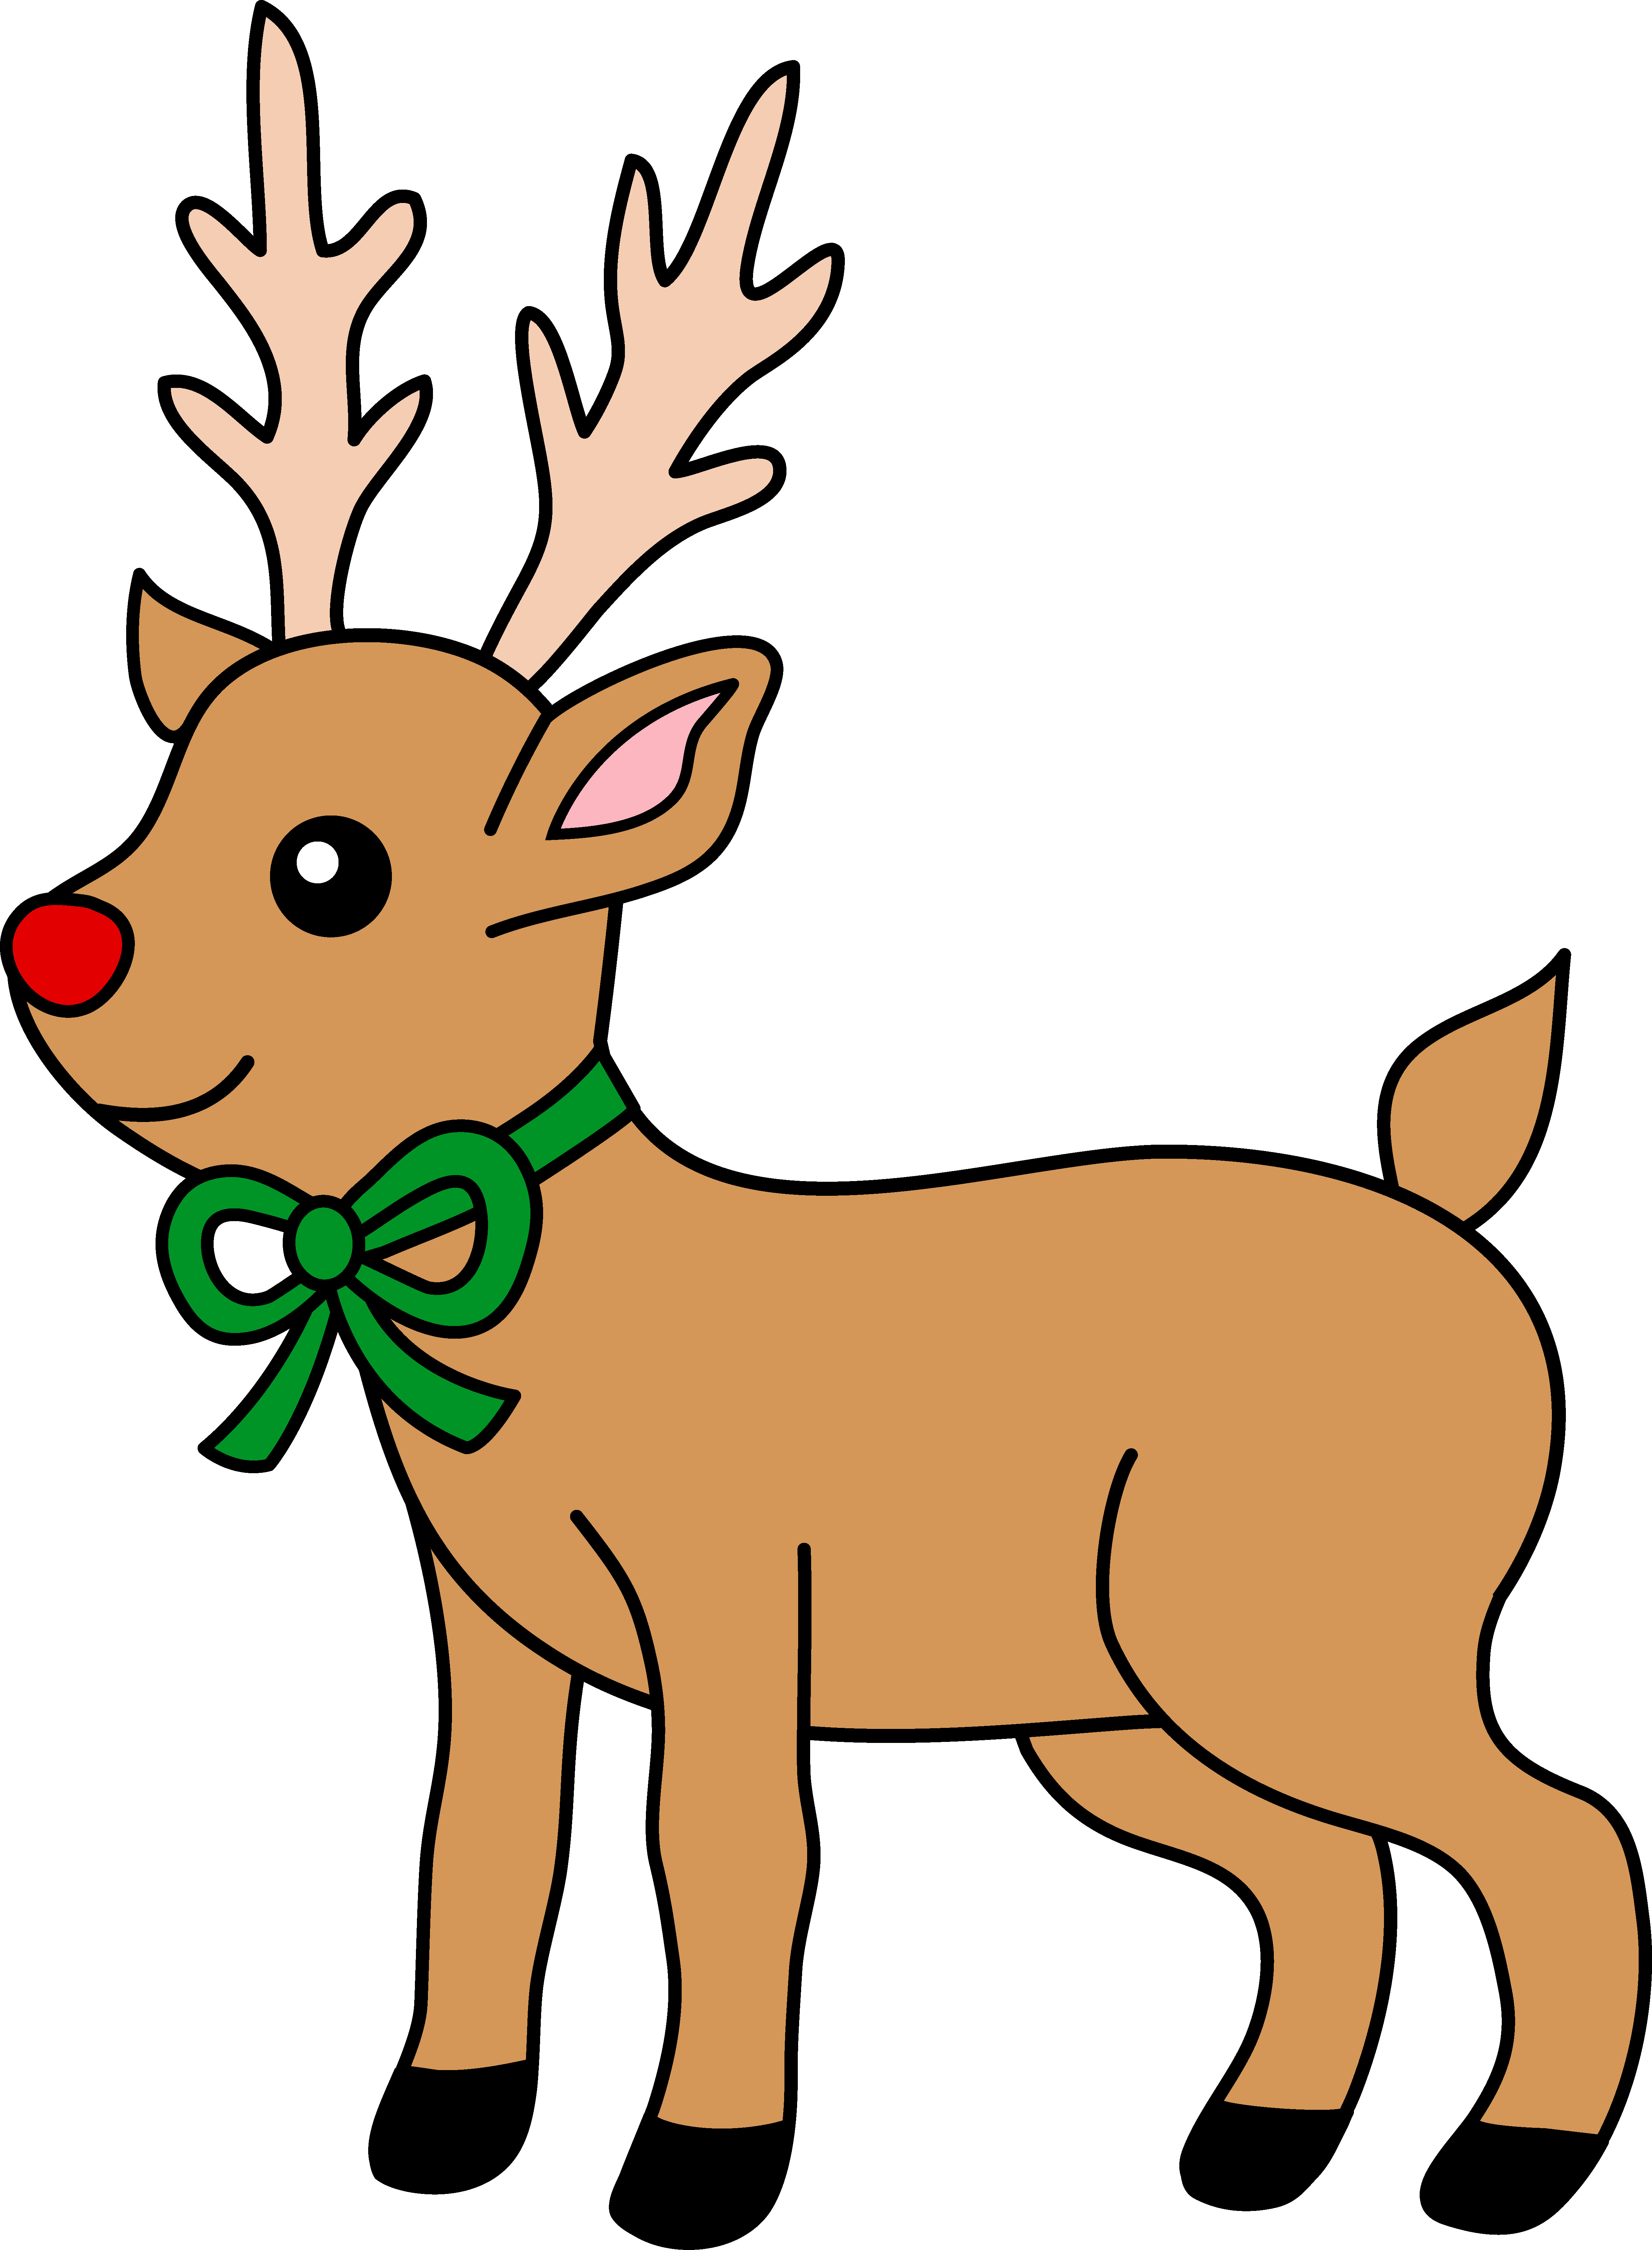 Reindeer clipart simple. Cute red nosed free